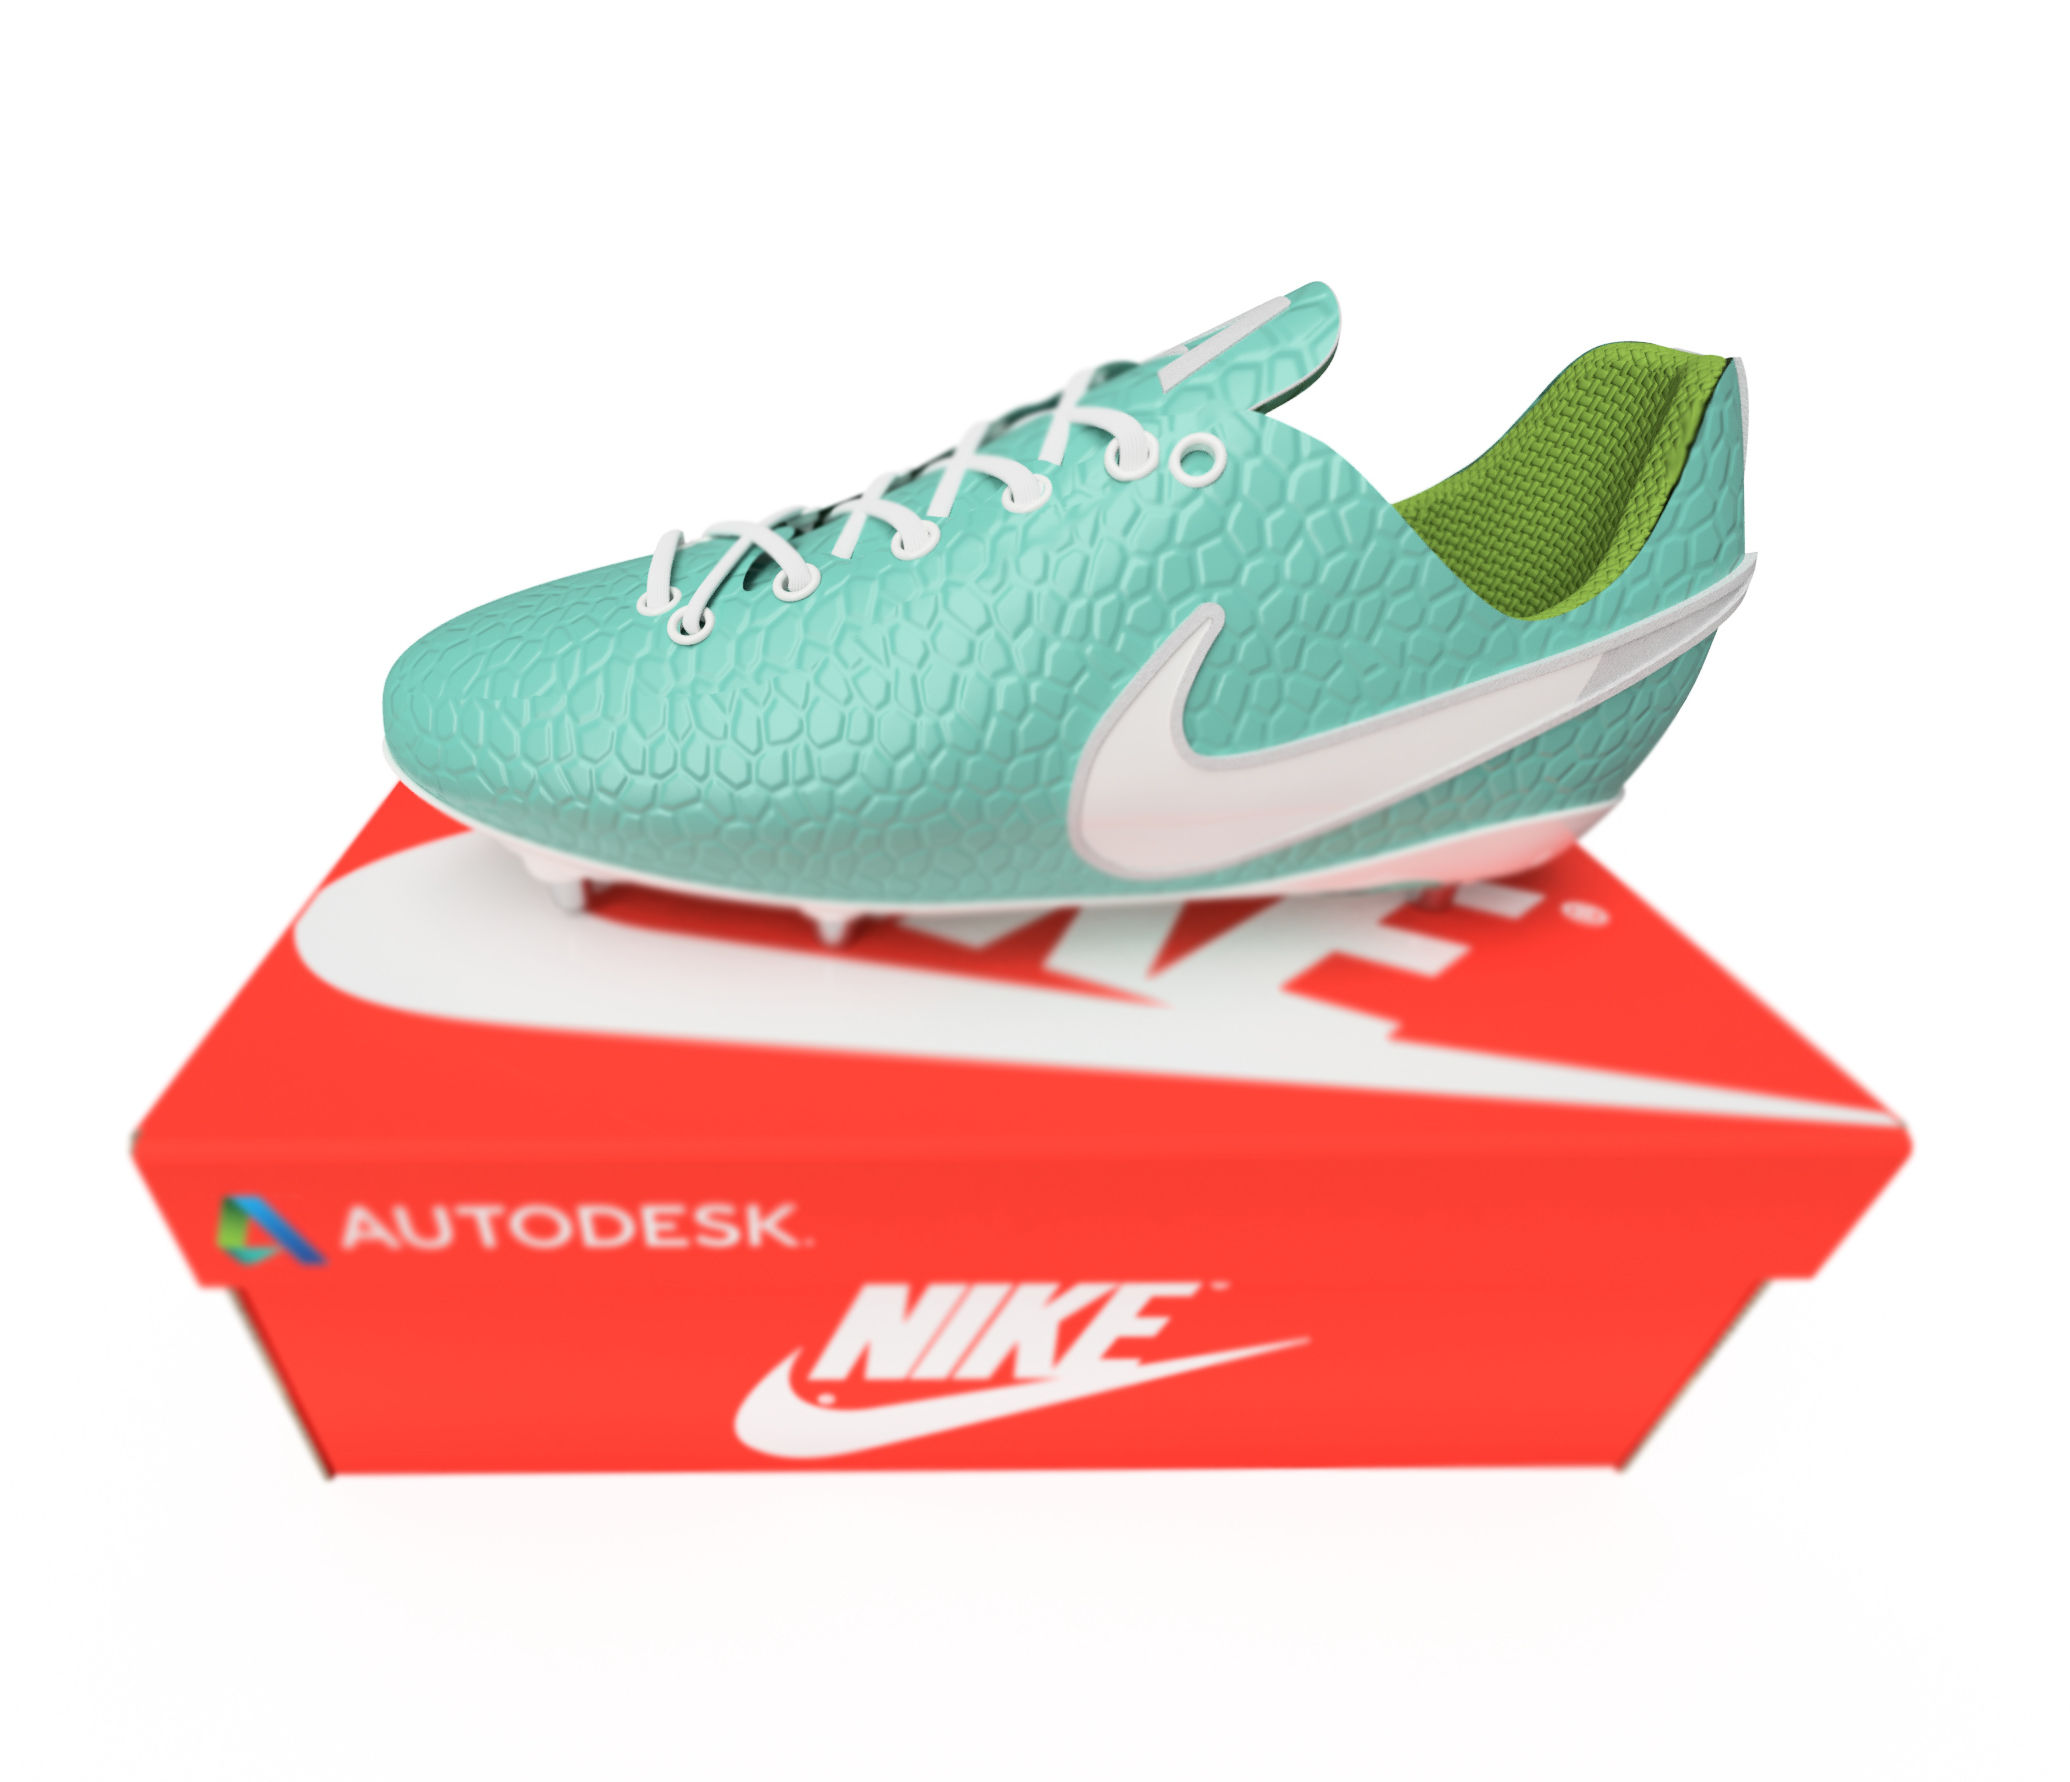 Nike Football Boot With Box - (Autodesk Edition)